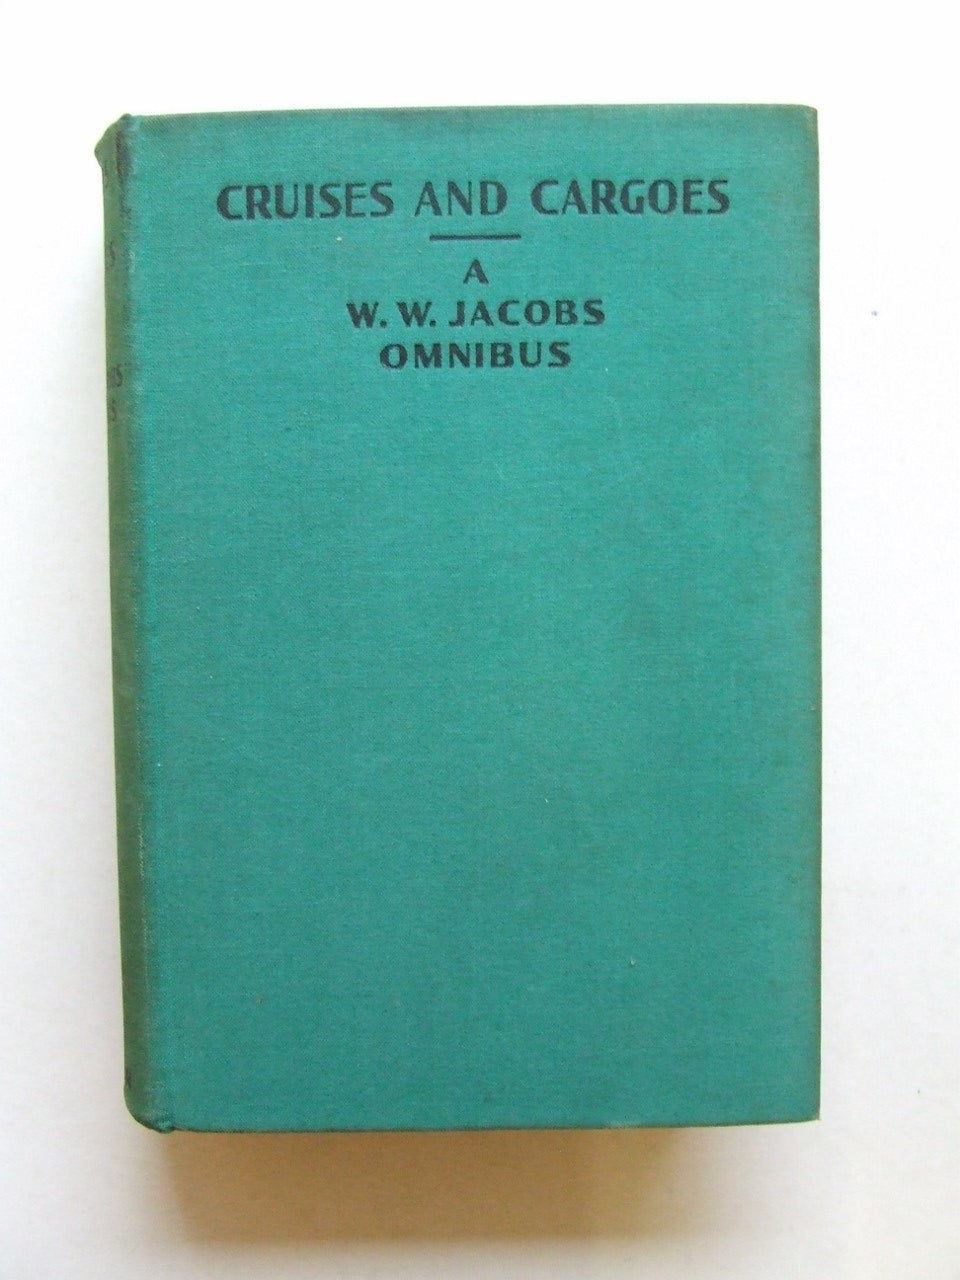 Cruises and Cargoes, a W.W. Jacobs omnibus